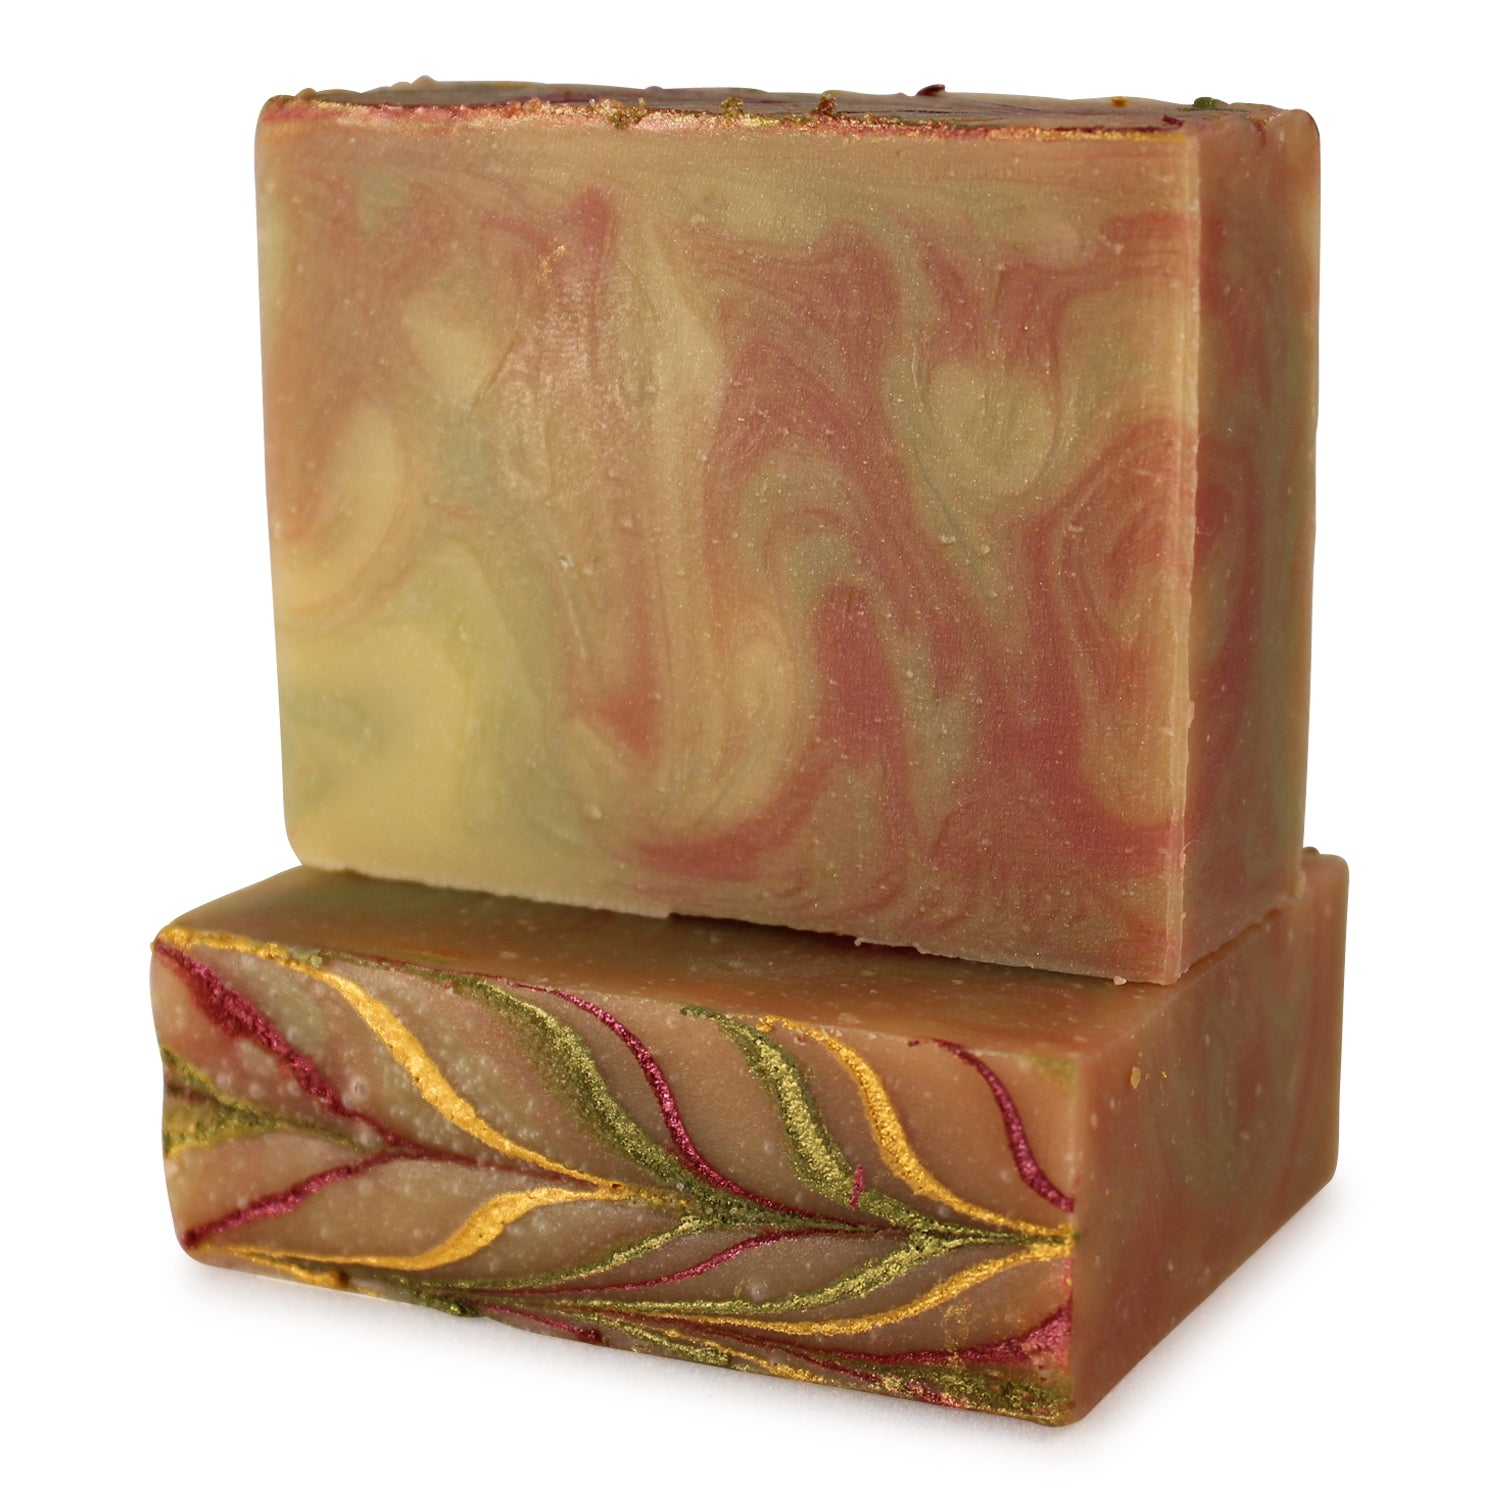 Harvest Soap | apple, cinnamon, orange, clove + nutmeg